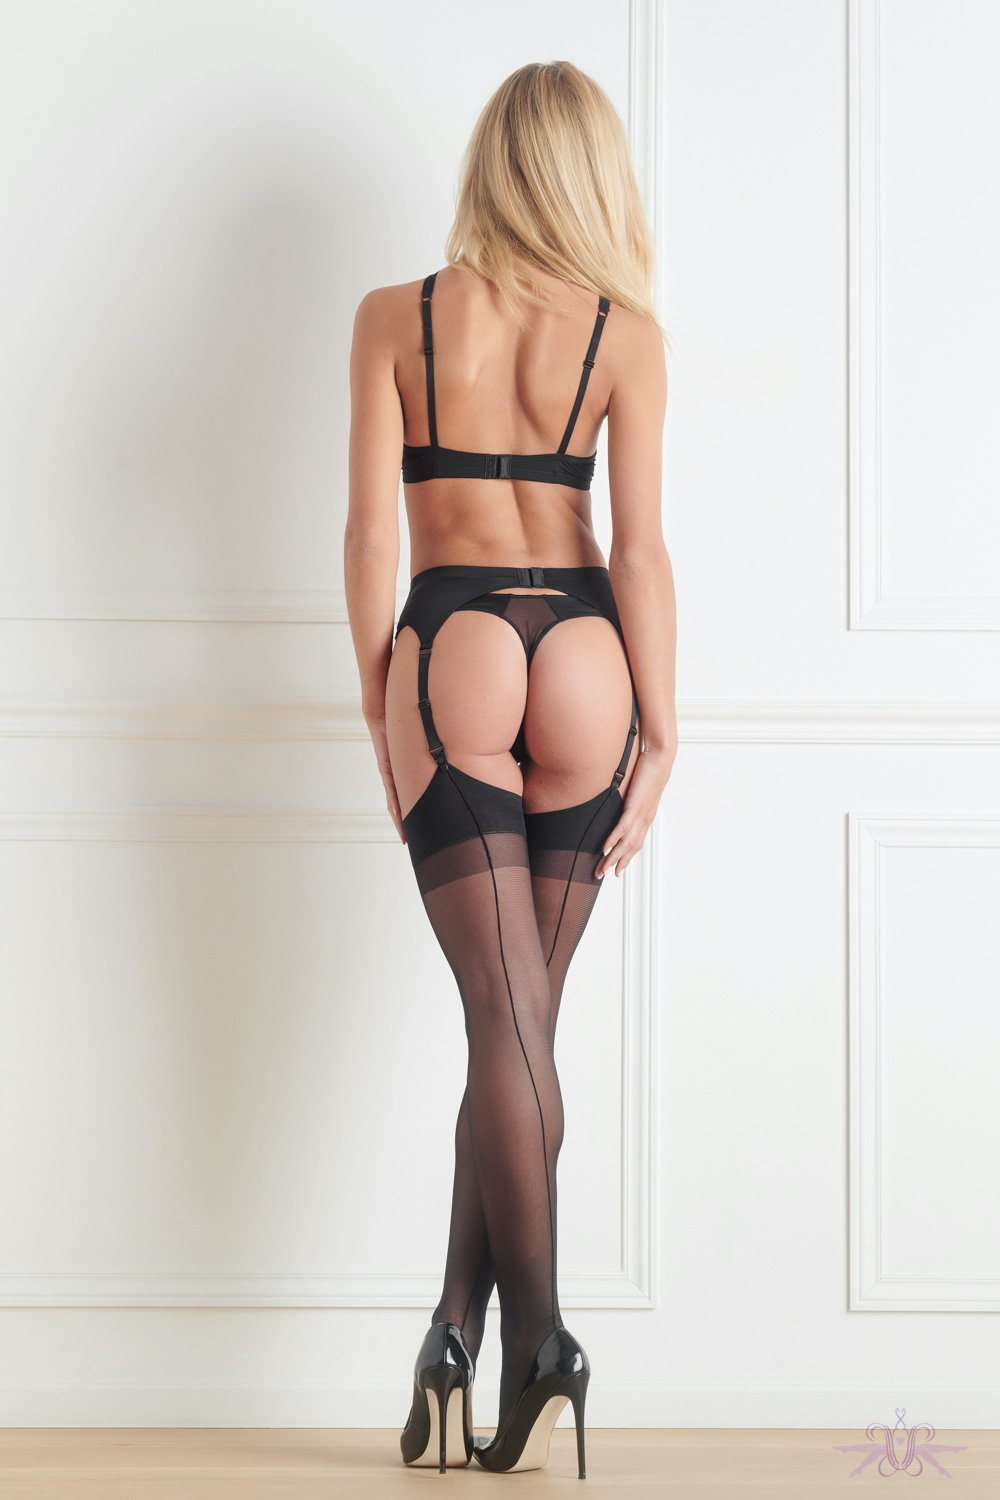 Maison Close Black Stockings with Black Seam